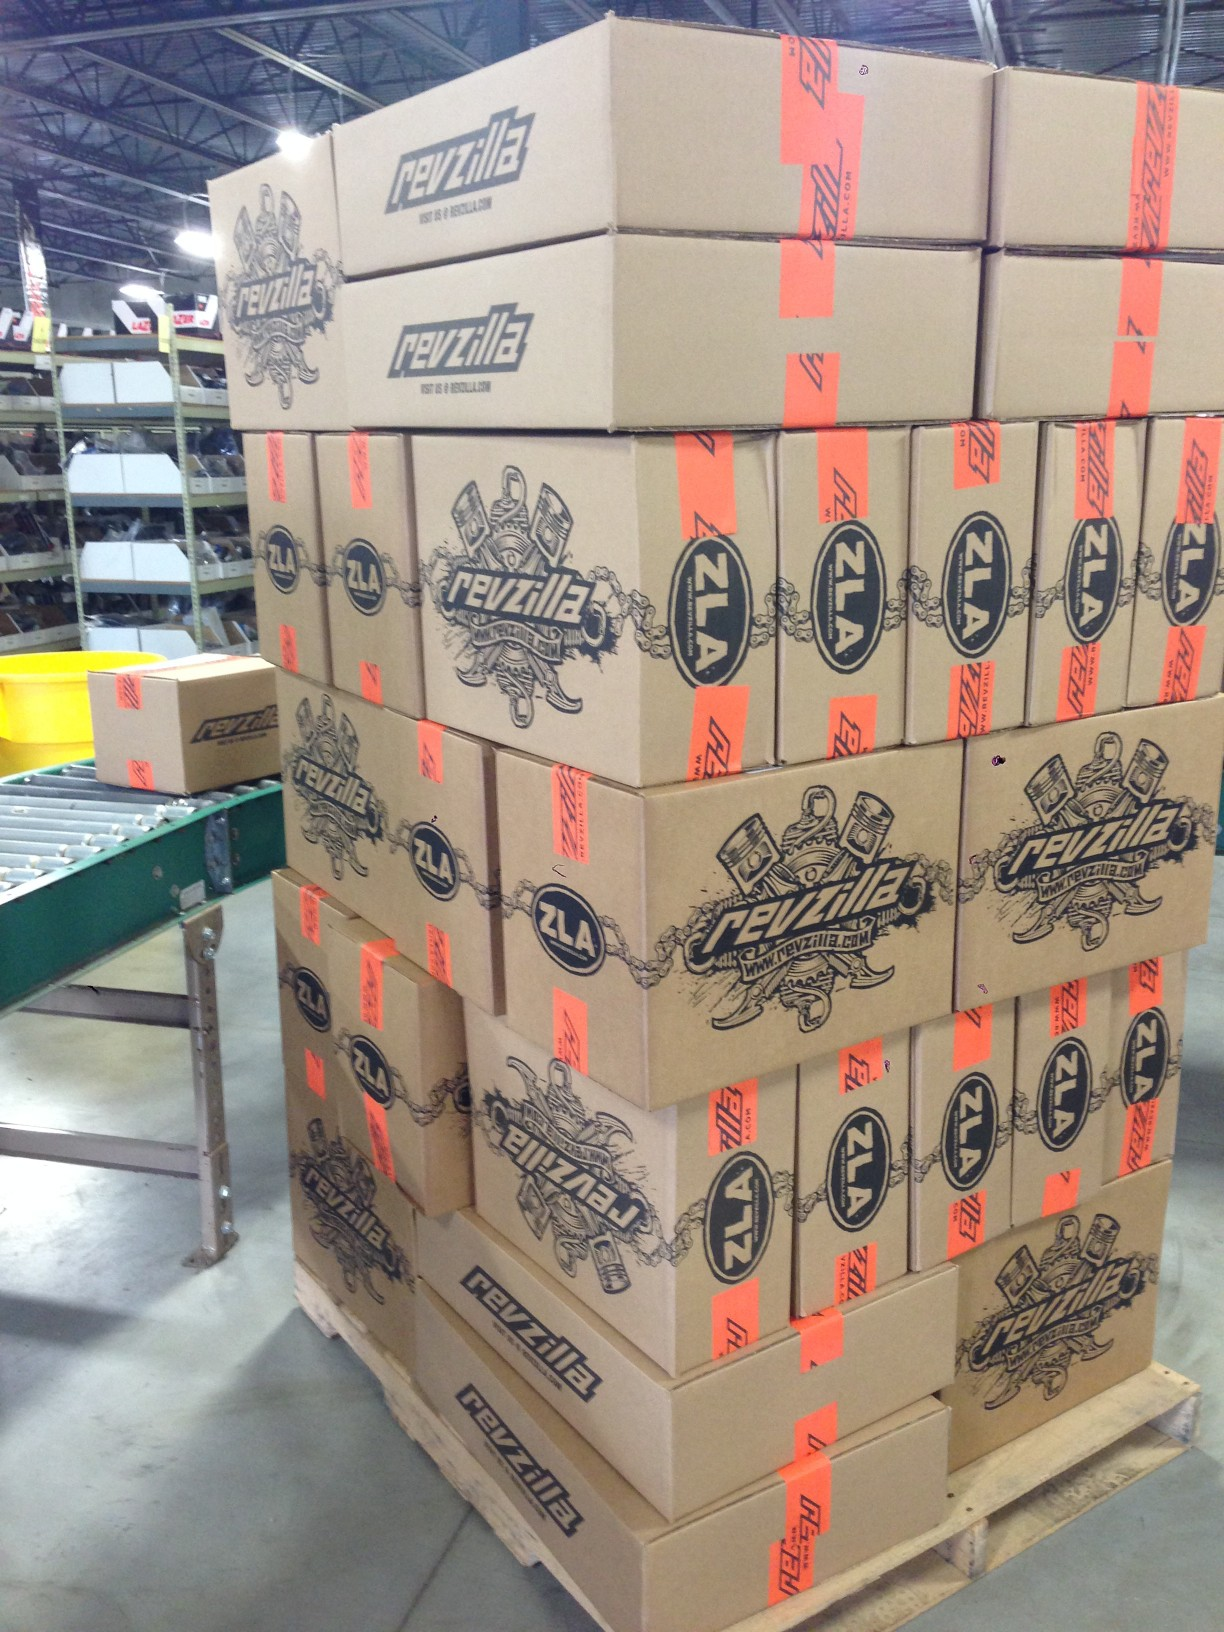 Revzilla Shipping cartons stacked on a palette